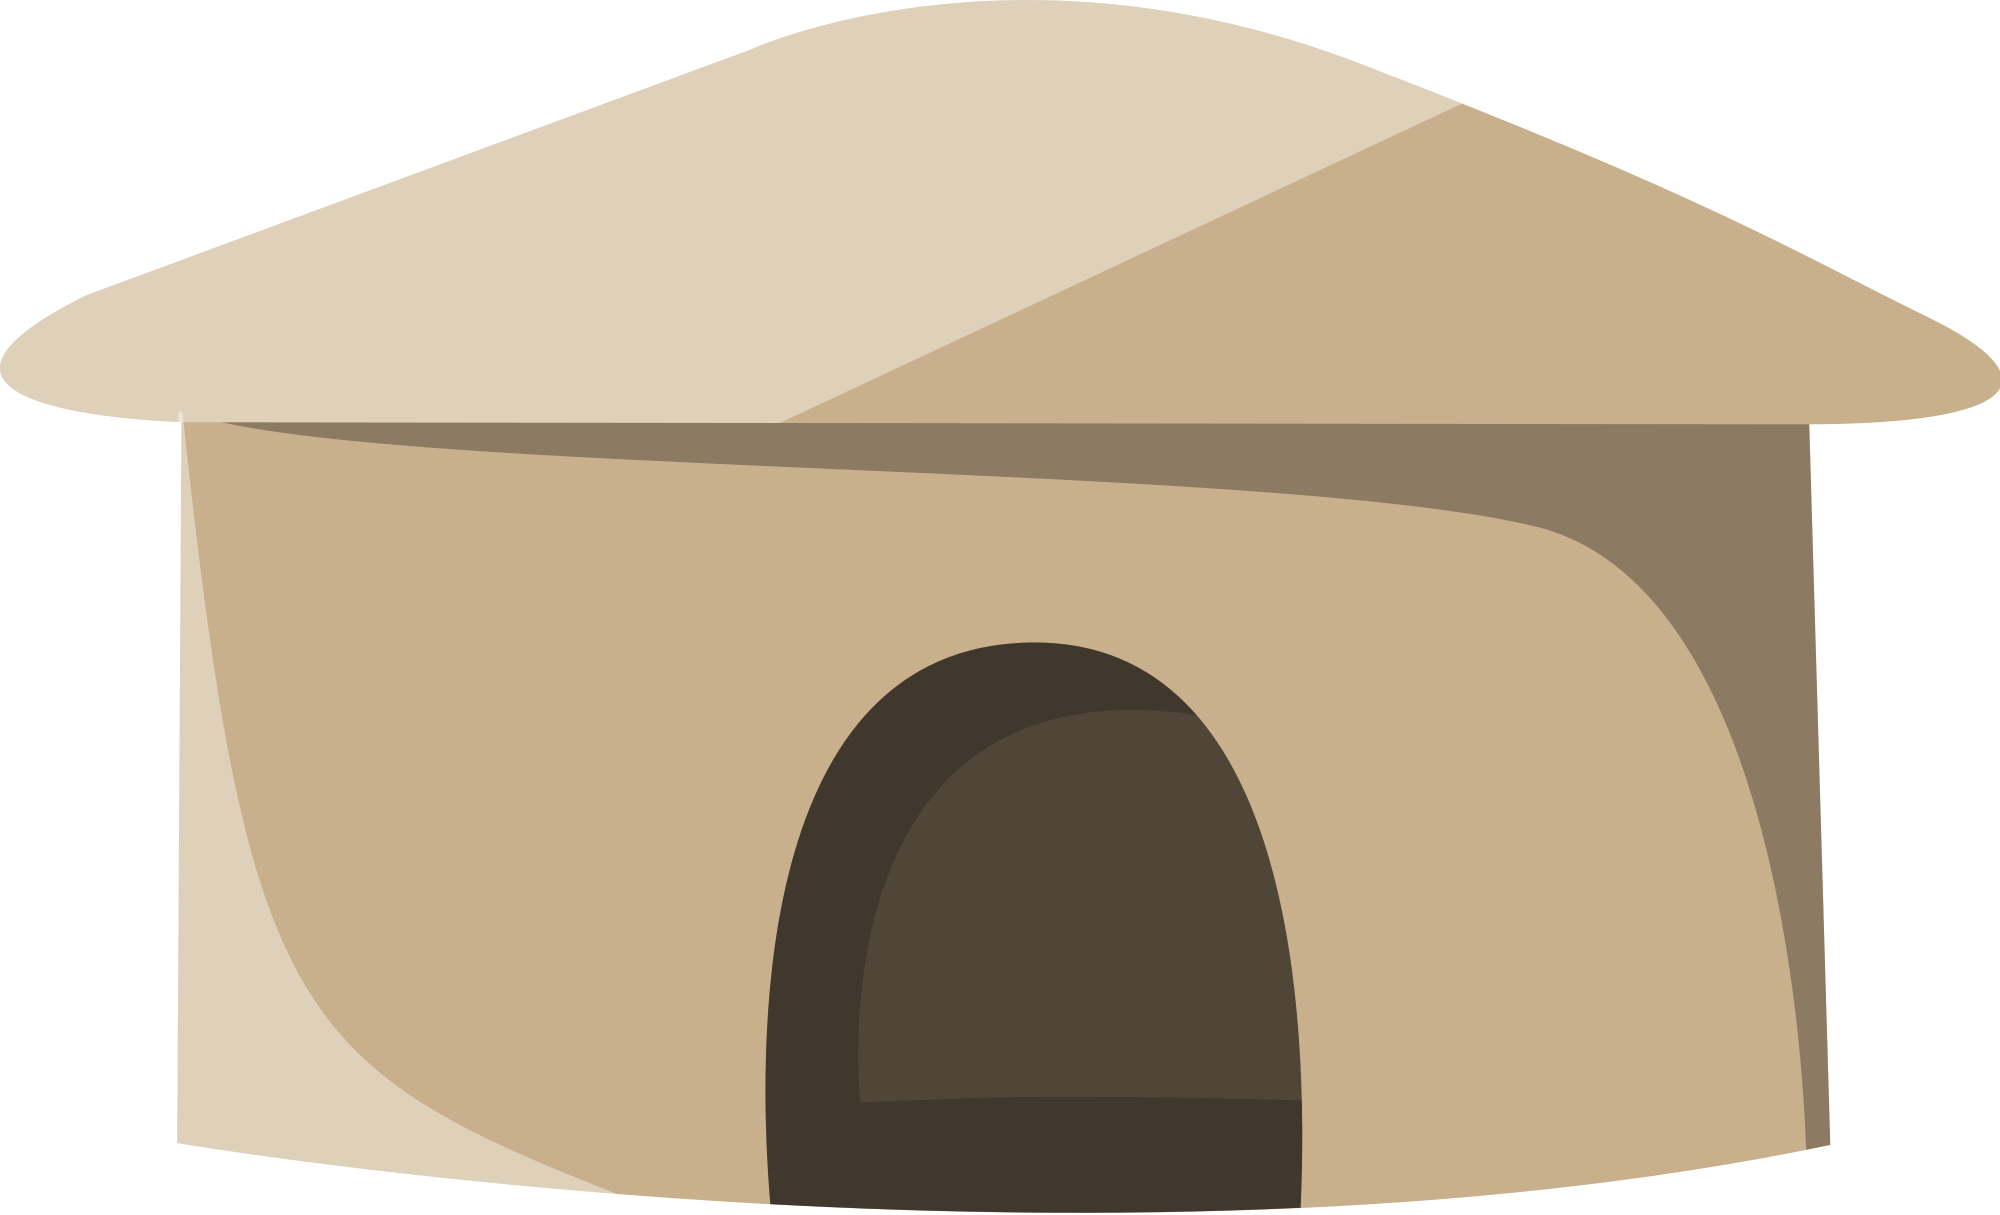 Roofing vector hut. File svg wikimedia commons